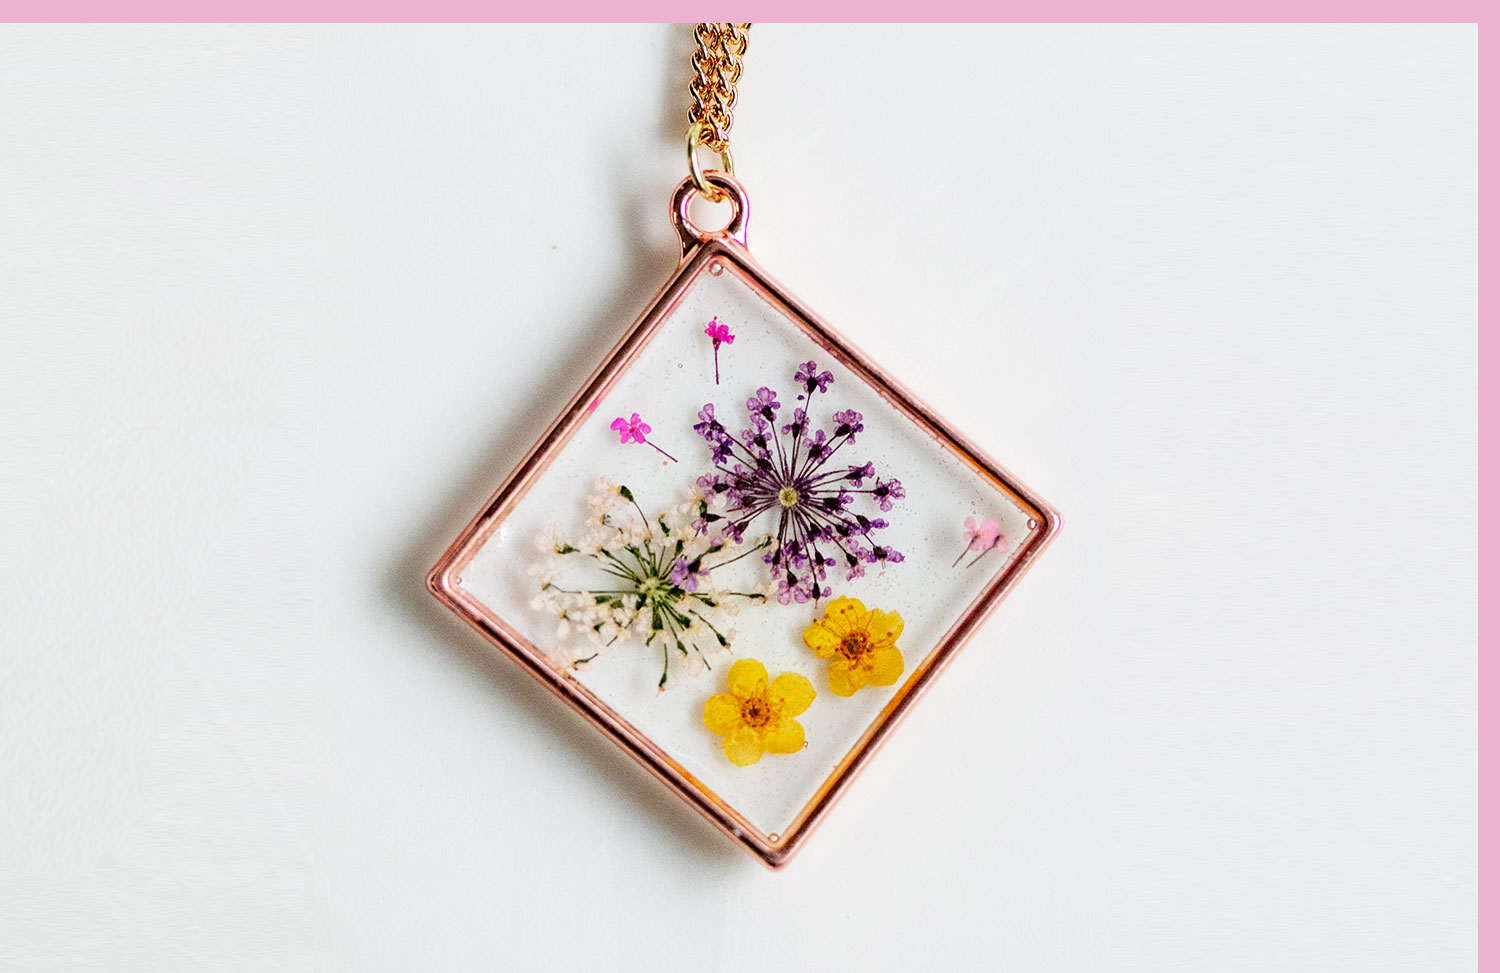 flowers pressed into a pendant necklace